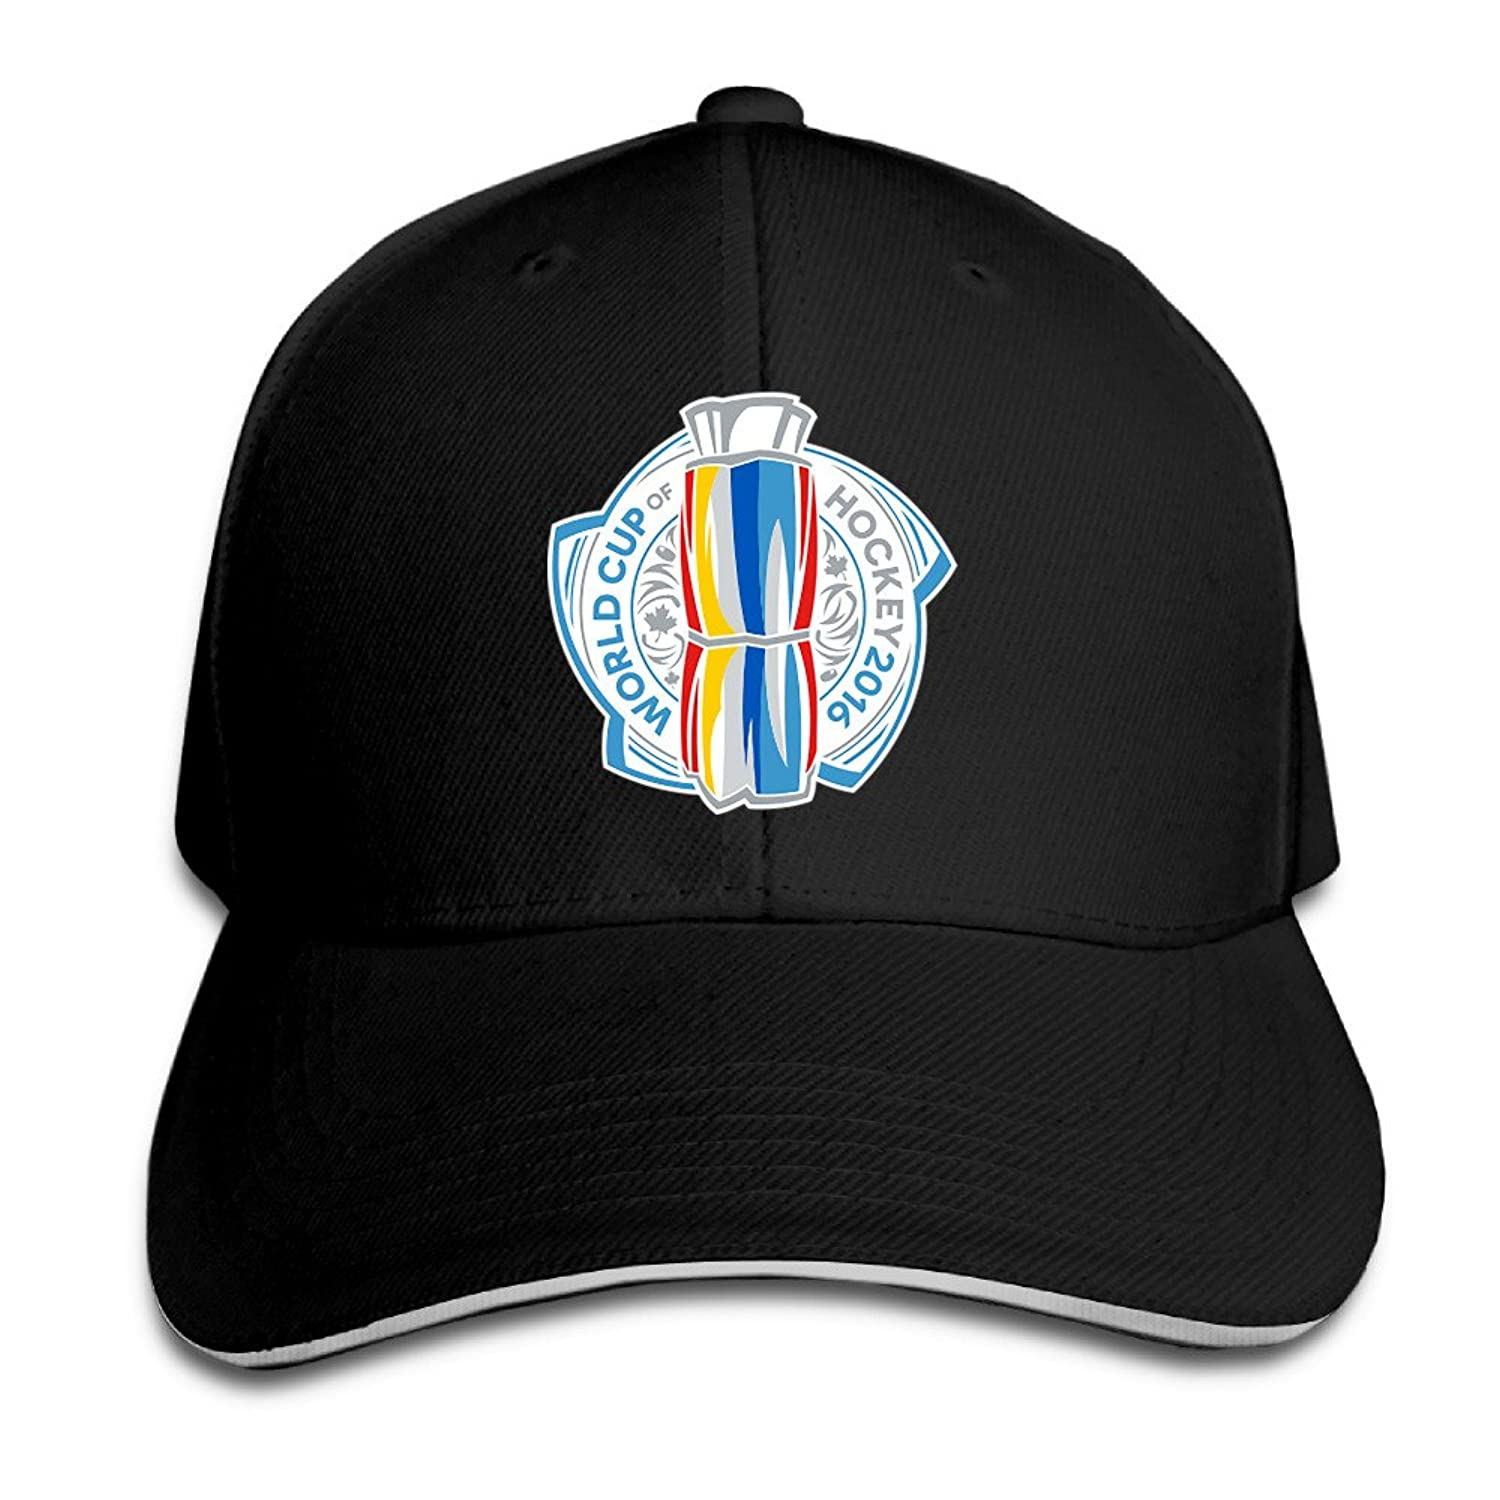 Iruds 2016 World Cup Of Hockey Logo Outdoor Sandwich Peaked Cap&Hat For Unisex